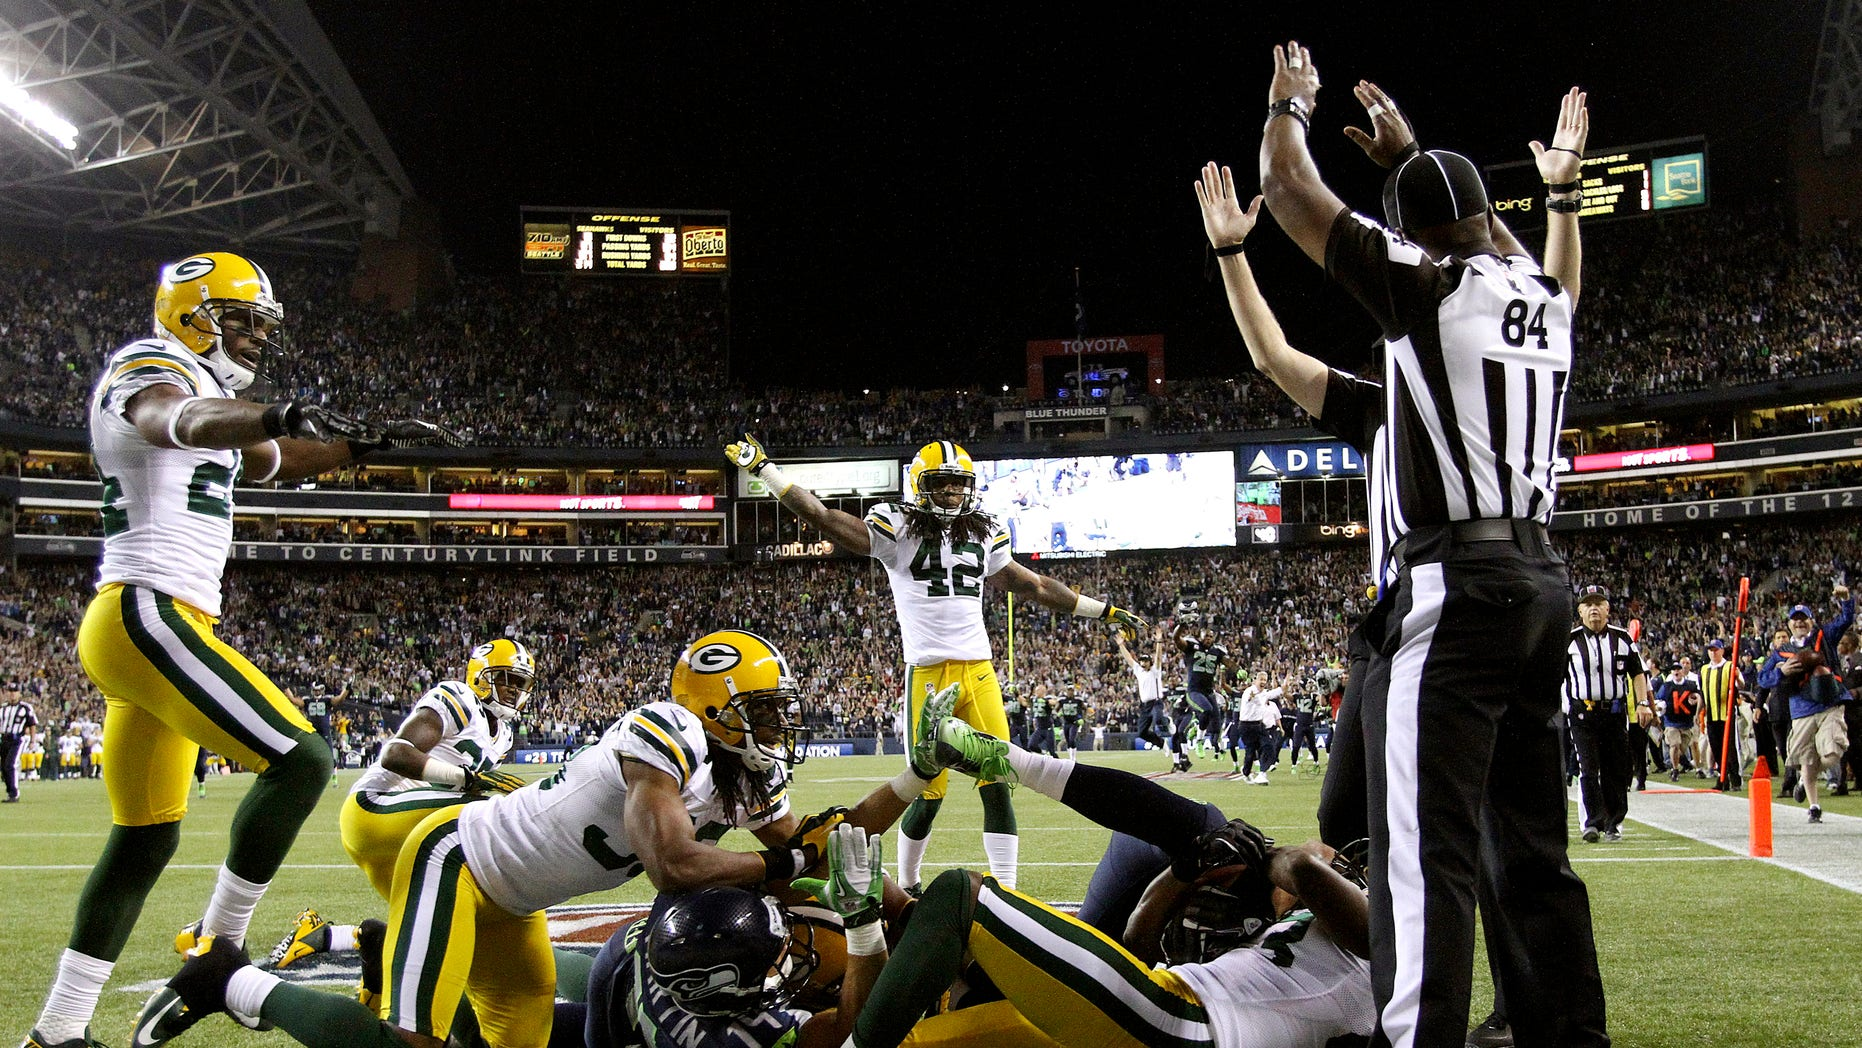 Sept. 24, 2012: Officials signal a touchdown after Seattle Seahawks wide receiver Golden Tate pulled in a last-second pass from quarterback Russell Wilson to defeat the Green Bay Packers 14-12 in an NFL football game.